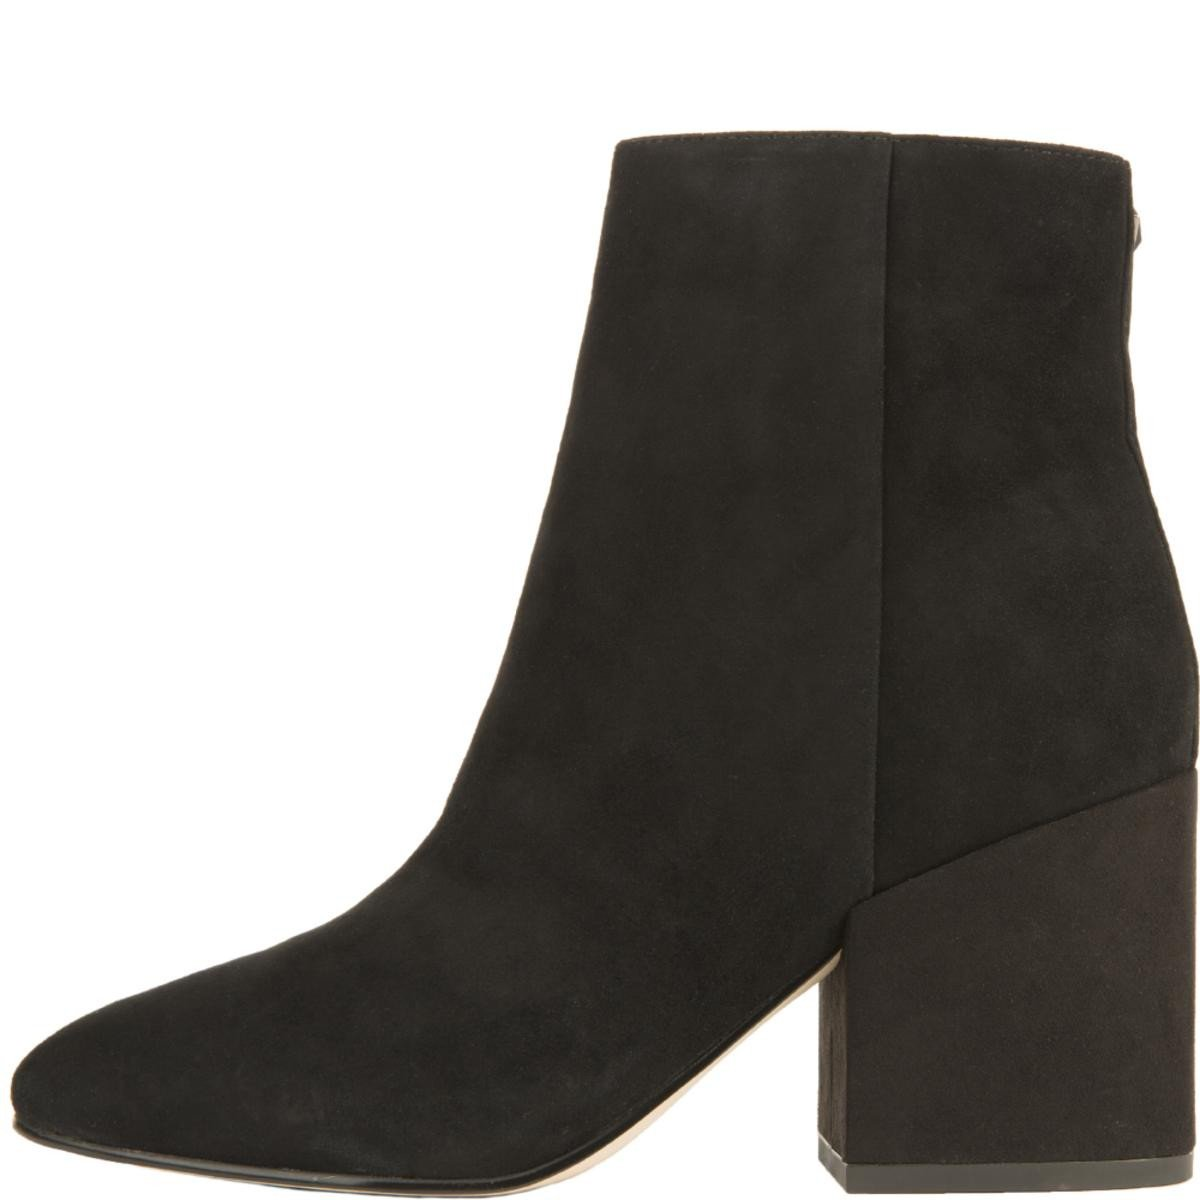 Sam Edelman for Women: Taye Black Heeled Booties